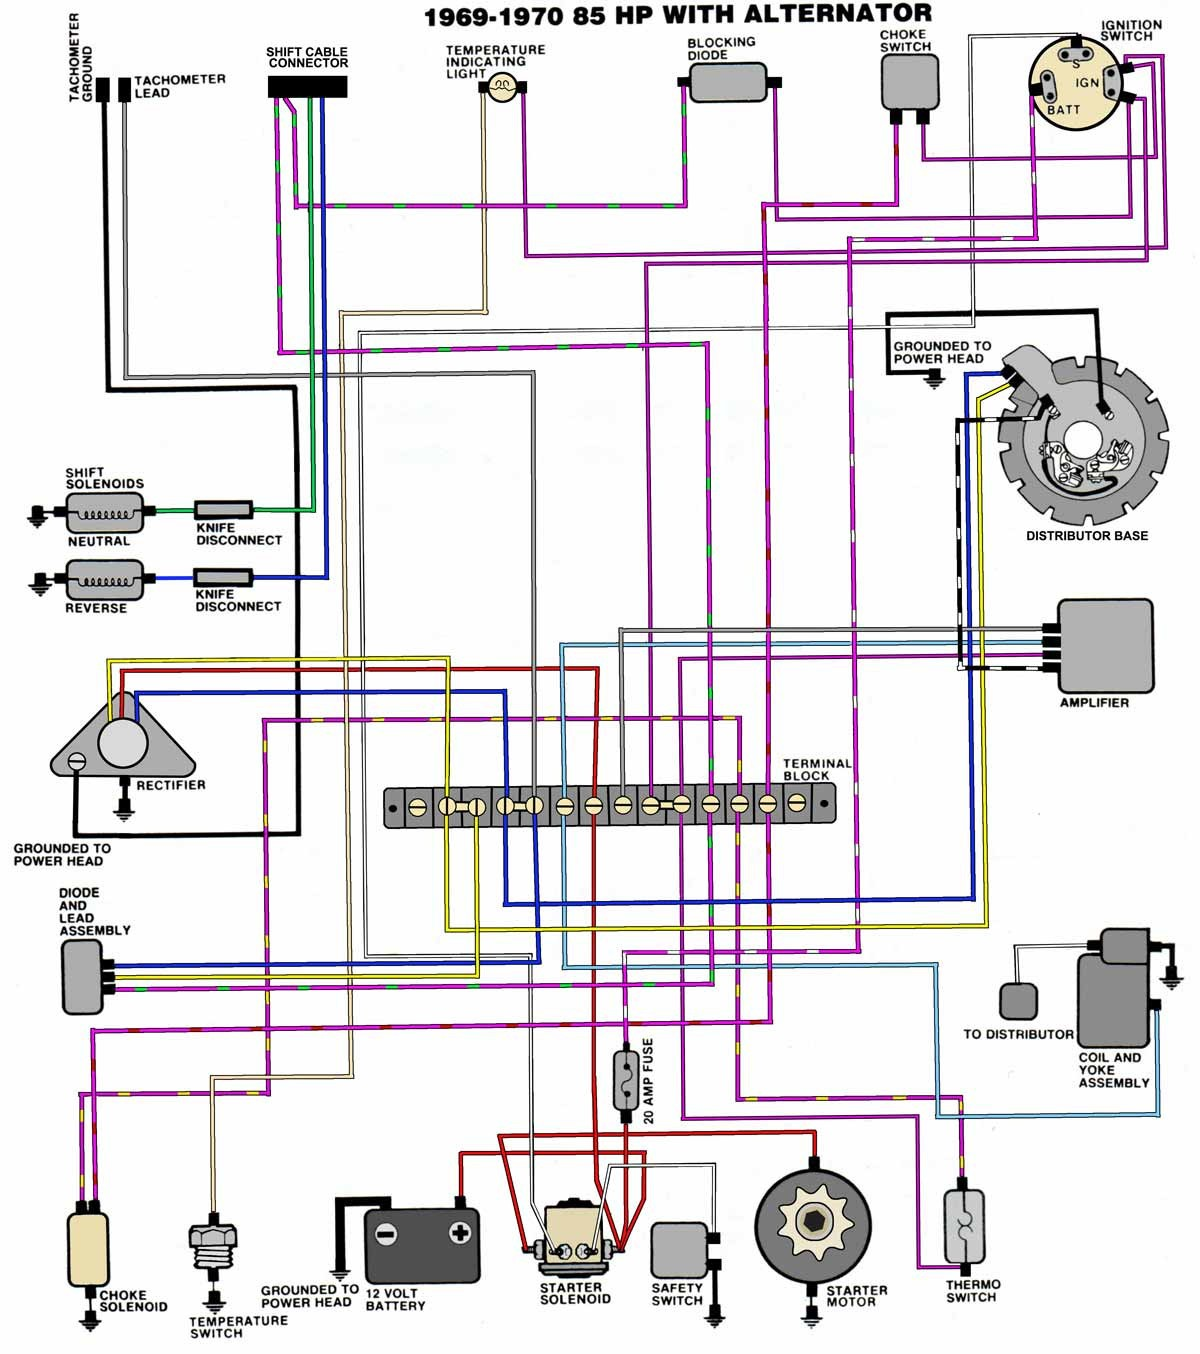 1972 Johnson 100 Hp Wiring Diagram Free Picture | Wiring Diagram on